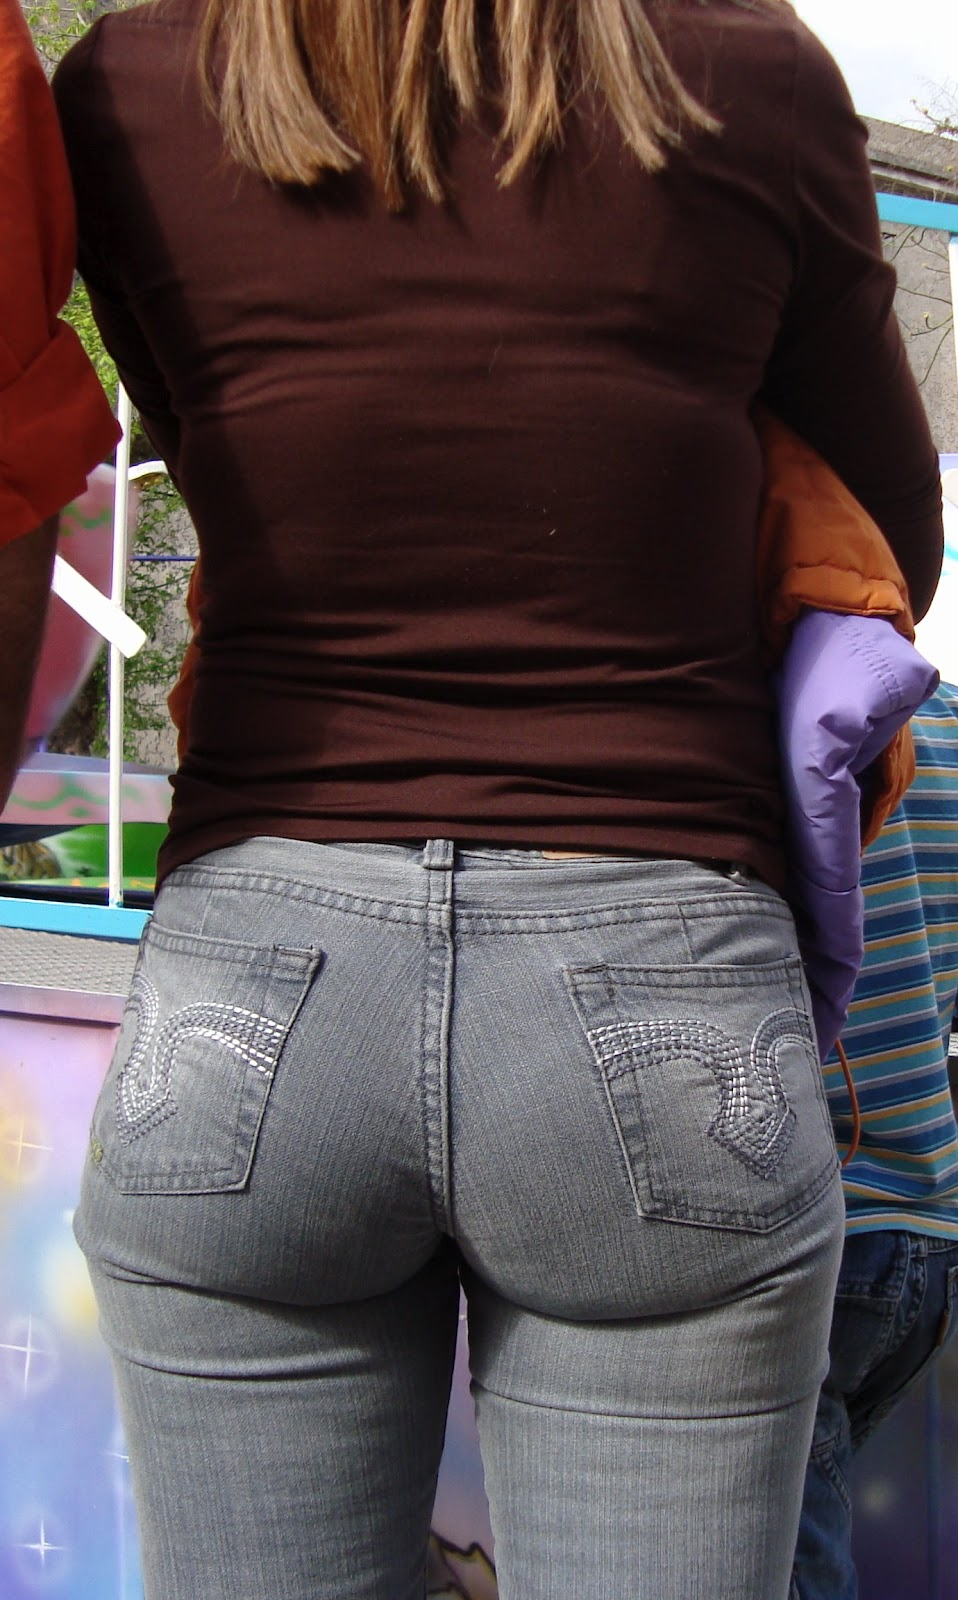 Perfect ass in jeans